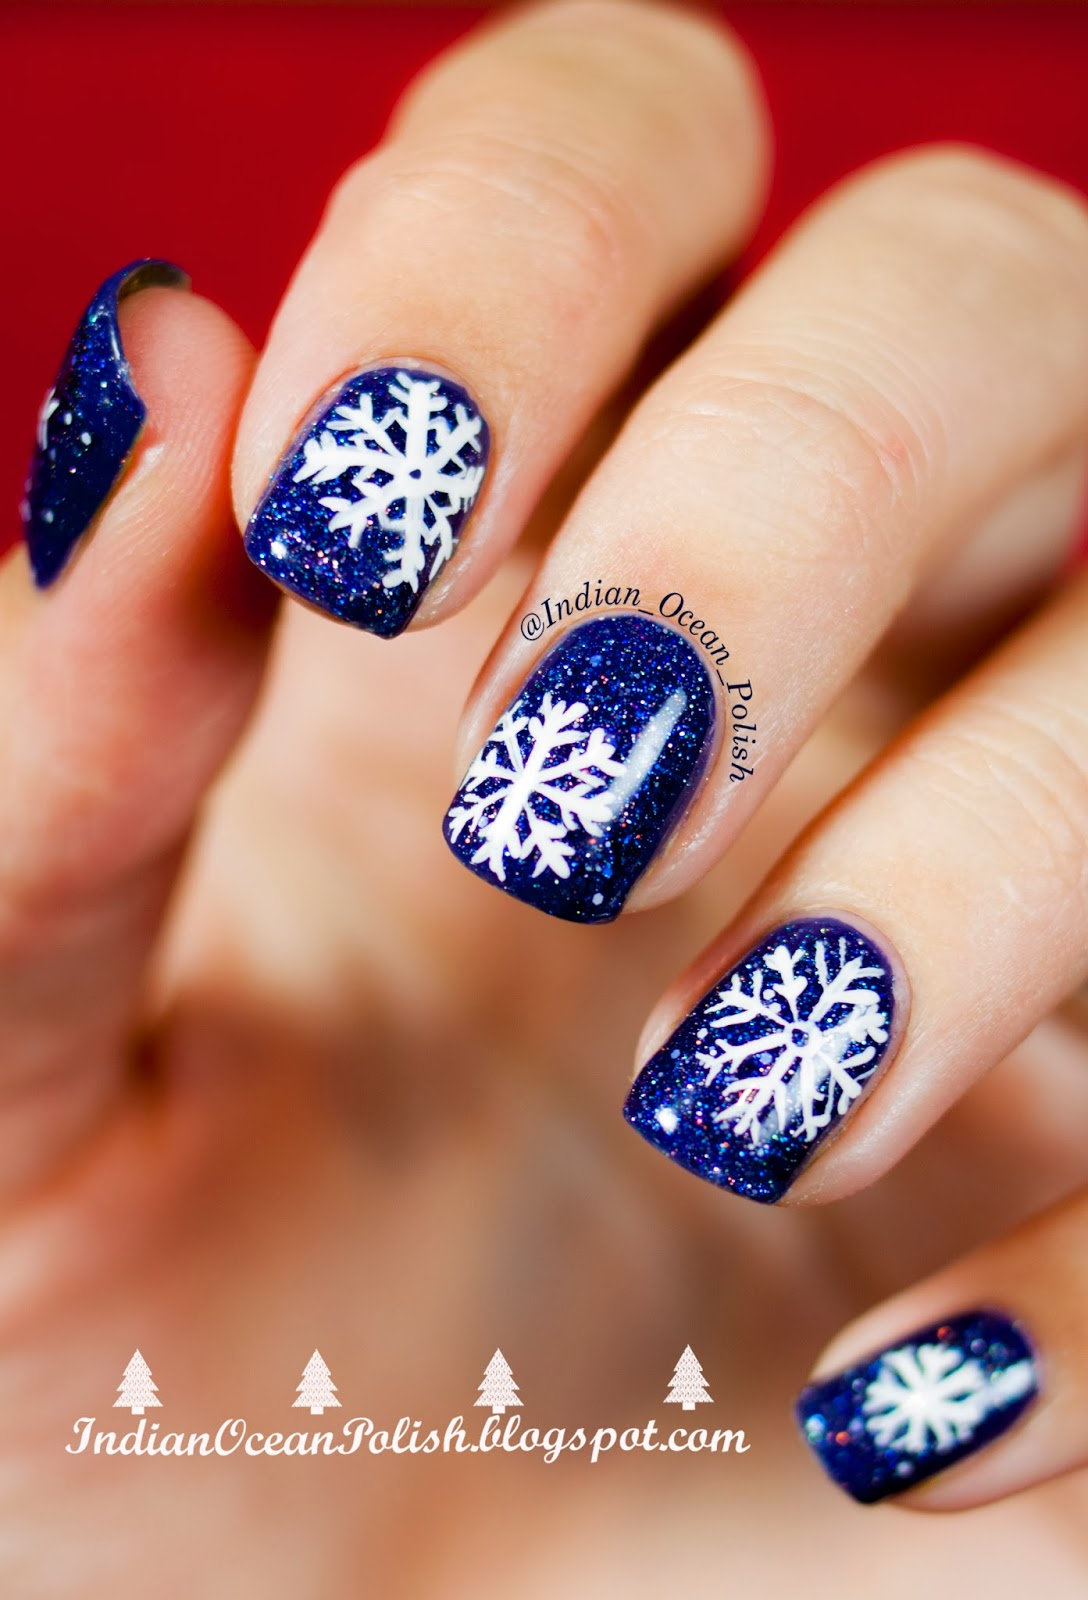 Nail Art Designs And Nail Polishes For French Manicure: Indian Ocean Polish: Christmas 2013 Nail Art Ideas: Simple